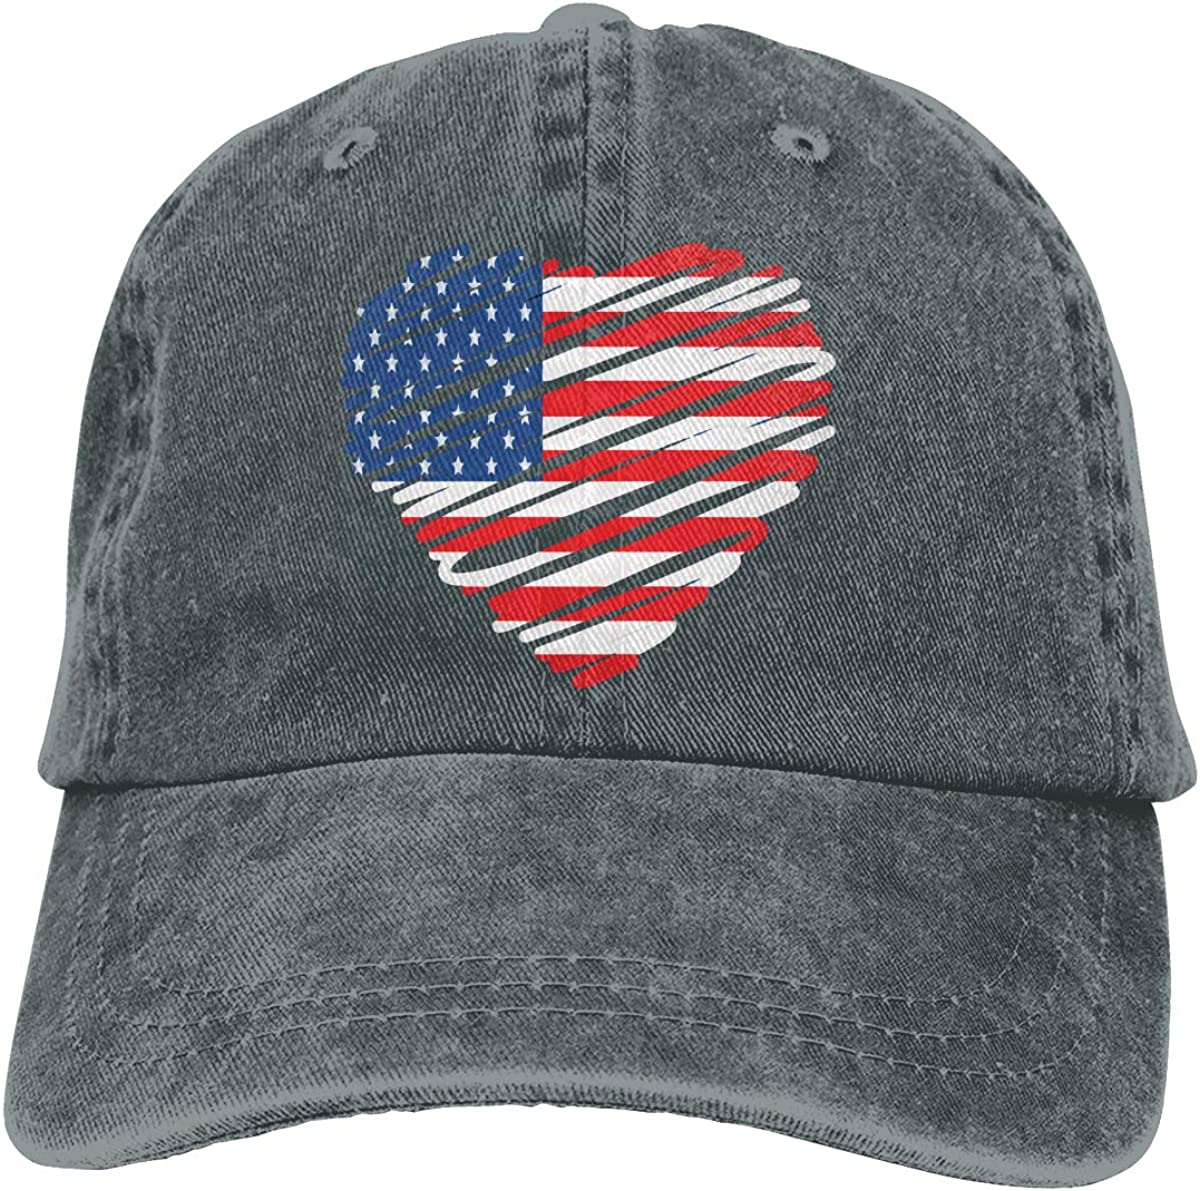 American Flag Heart Adult Personalize Cowboy Hat Sun Hat Adjustable Baseball Cap